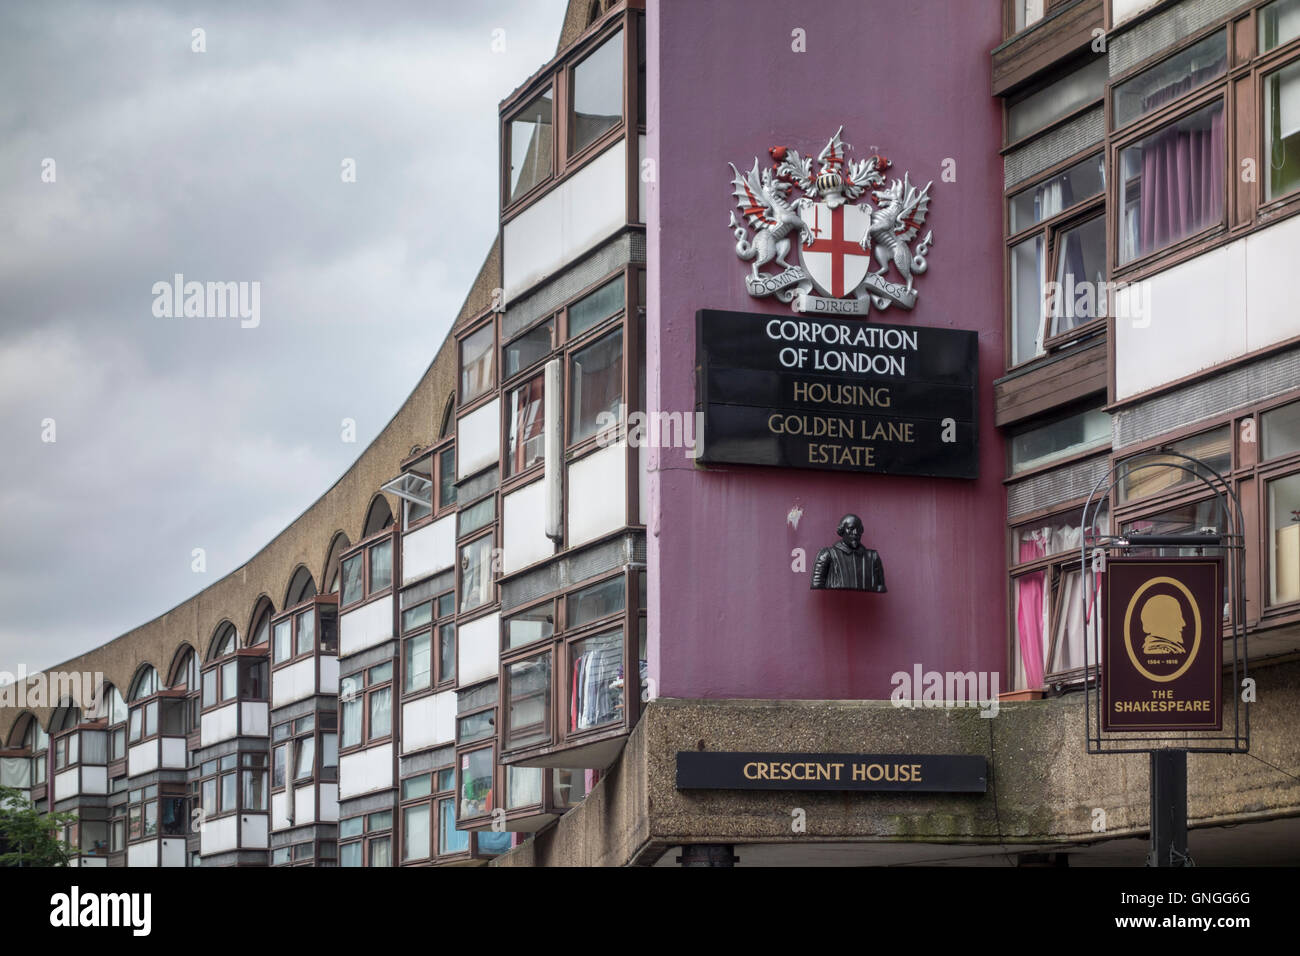 Crescent House, Golden Lane Estate Corporation of London, UK Stockbild